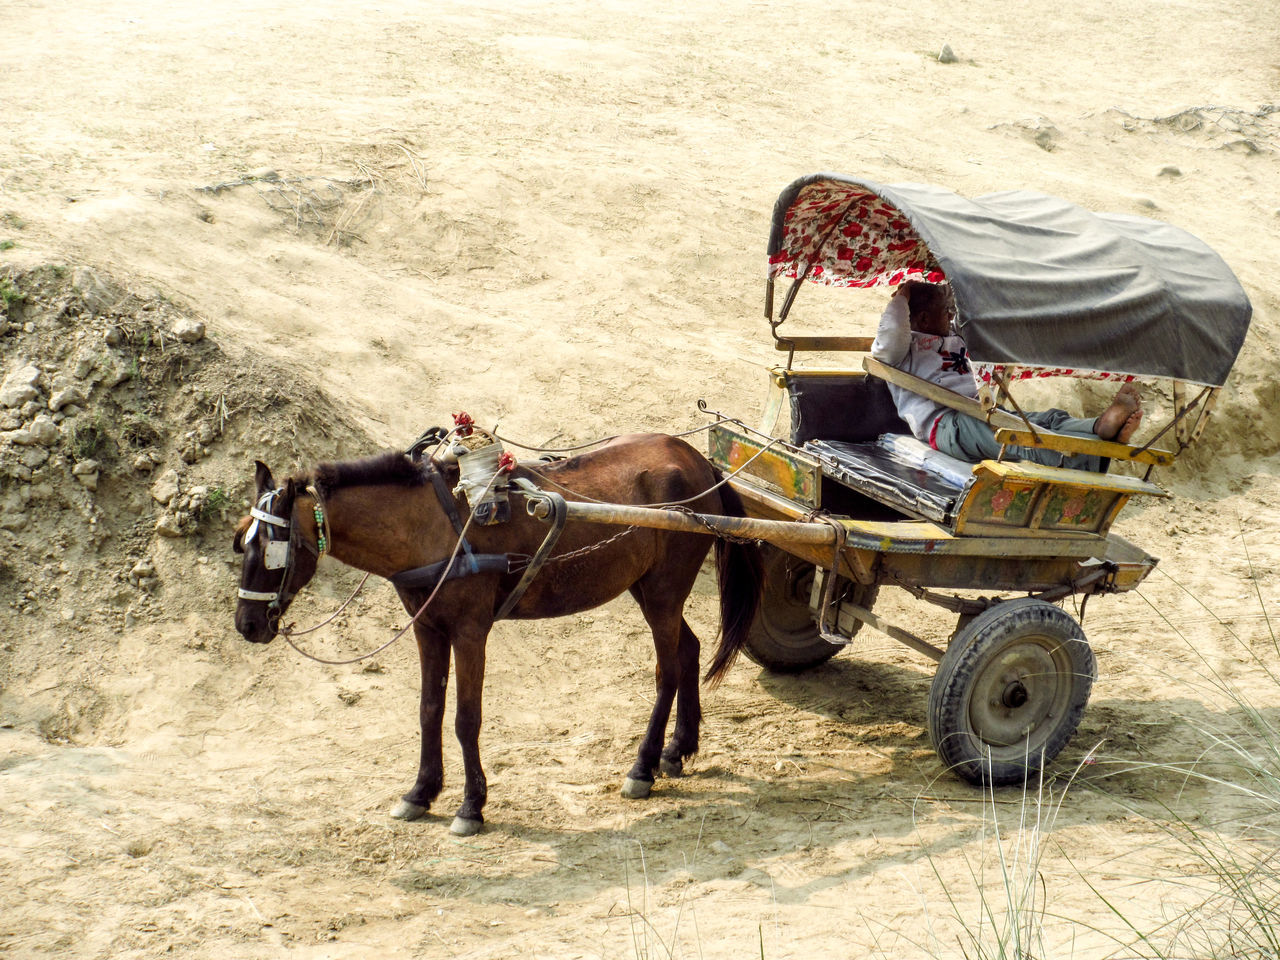 High Angle View Of Man Relaxing In Horse Cart